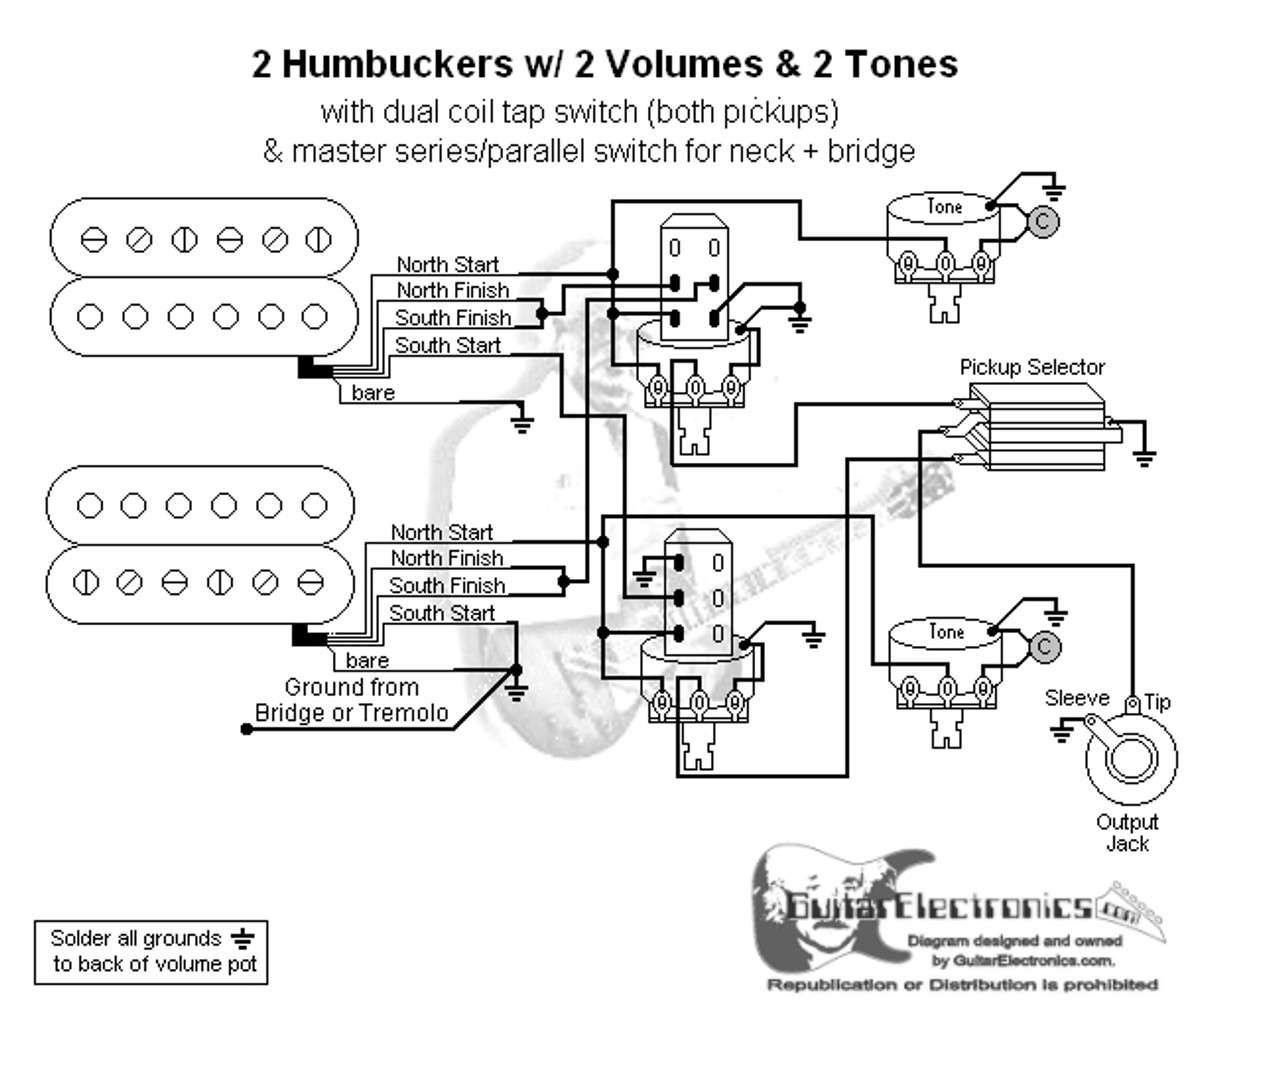 hight resolution of 2 hbs 3 way toggle 2 vol 2 tones coil tap u0026 series parallel2 humbuckers